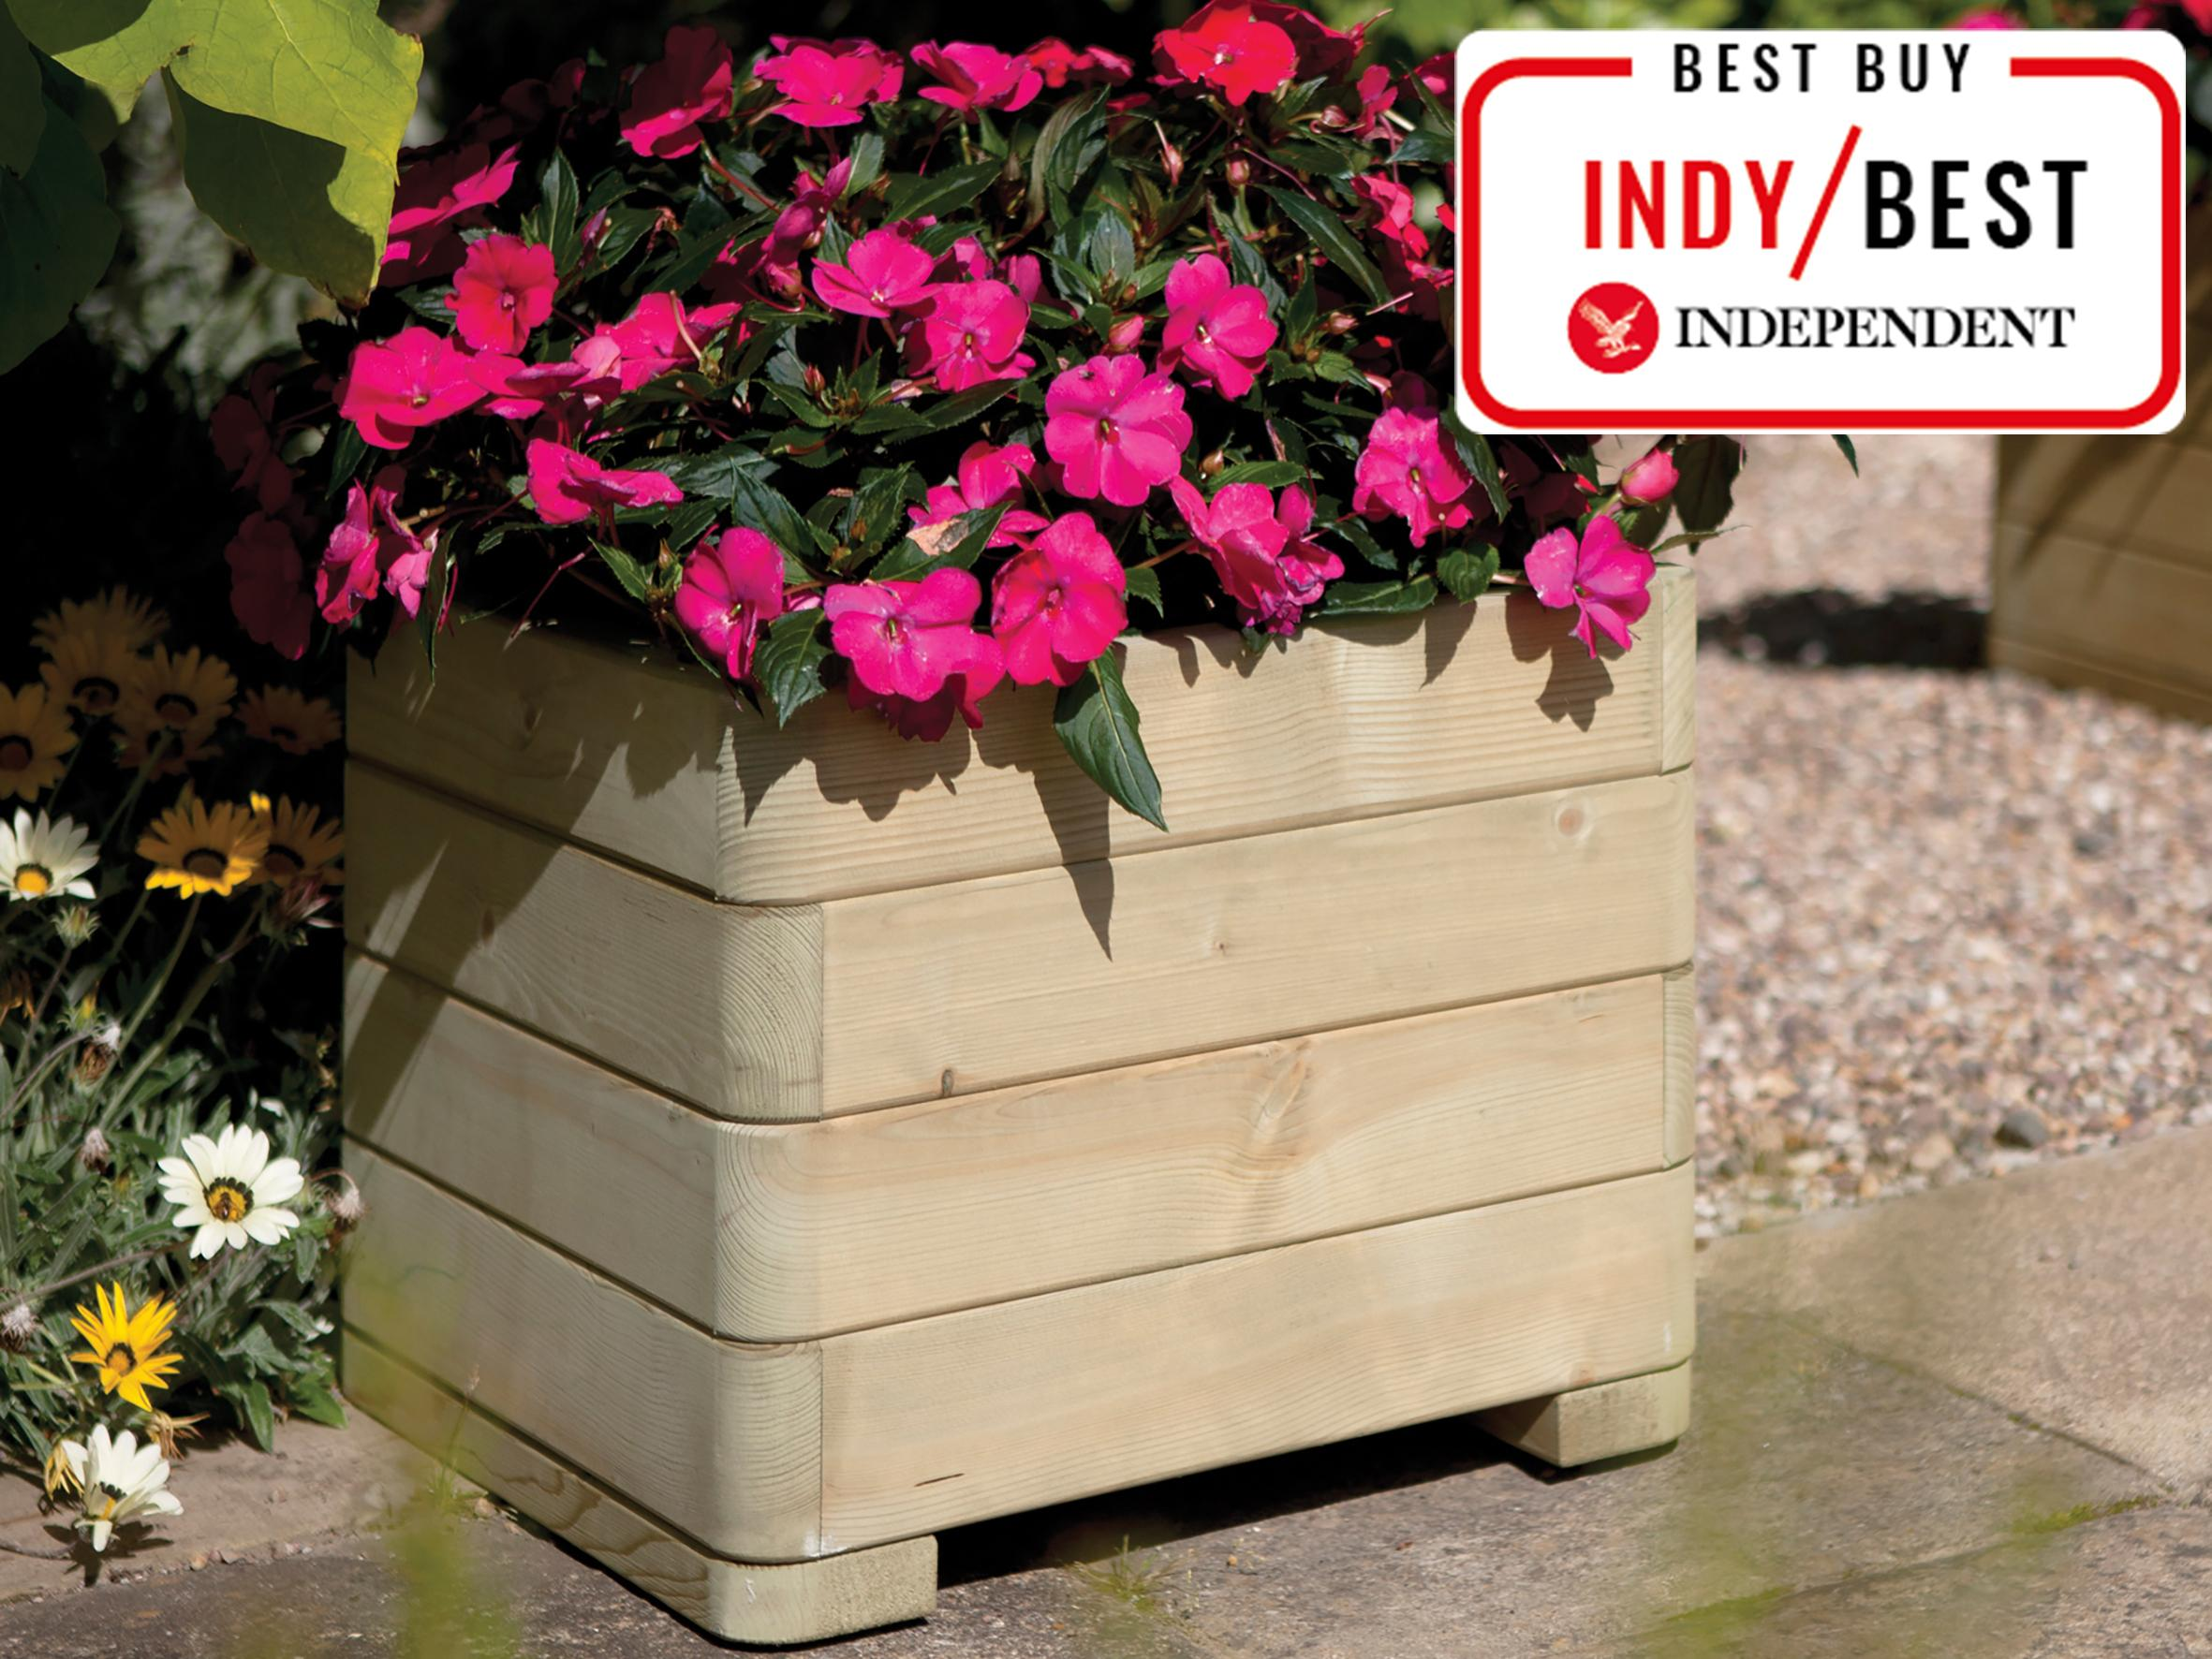 6 best balcony planters | The Independent Wooden Planters Liverpool on wooden home, wooden trellis, wooden plates, wooden pedestals, wooden troughs, wooden bookends, wooden arbors, wooden bells, wooden pavers, wooden rakes, wooden bird feeders, wooden chairs, wooden garden, wooden decking, wooden bird houses, wooden toys, wooden benches, wooden plows, wooden bollards, wooden greenhouses,